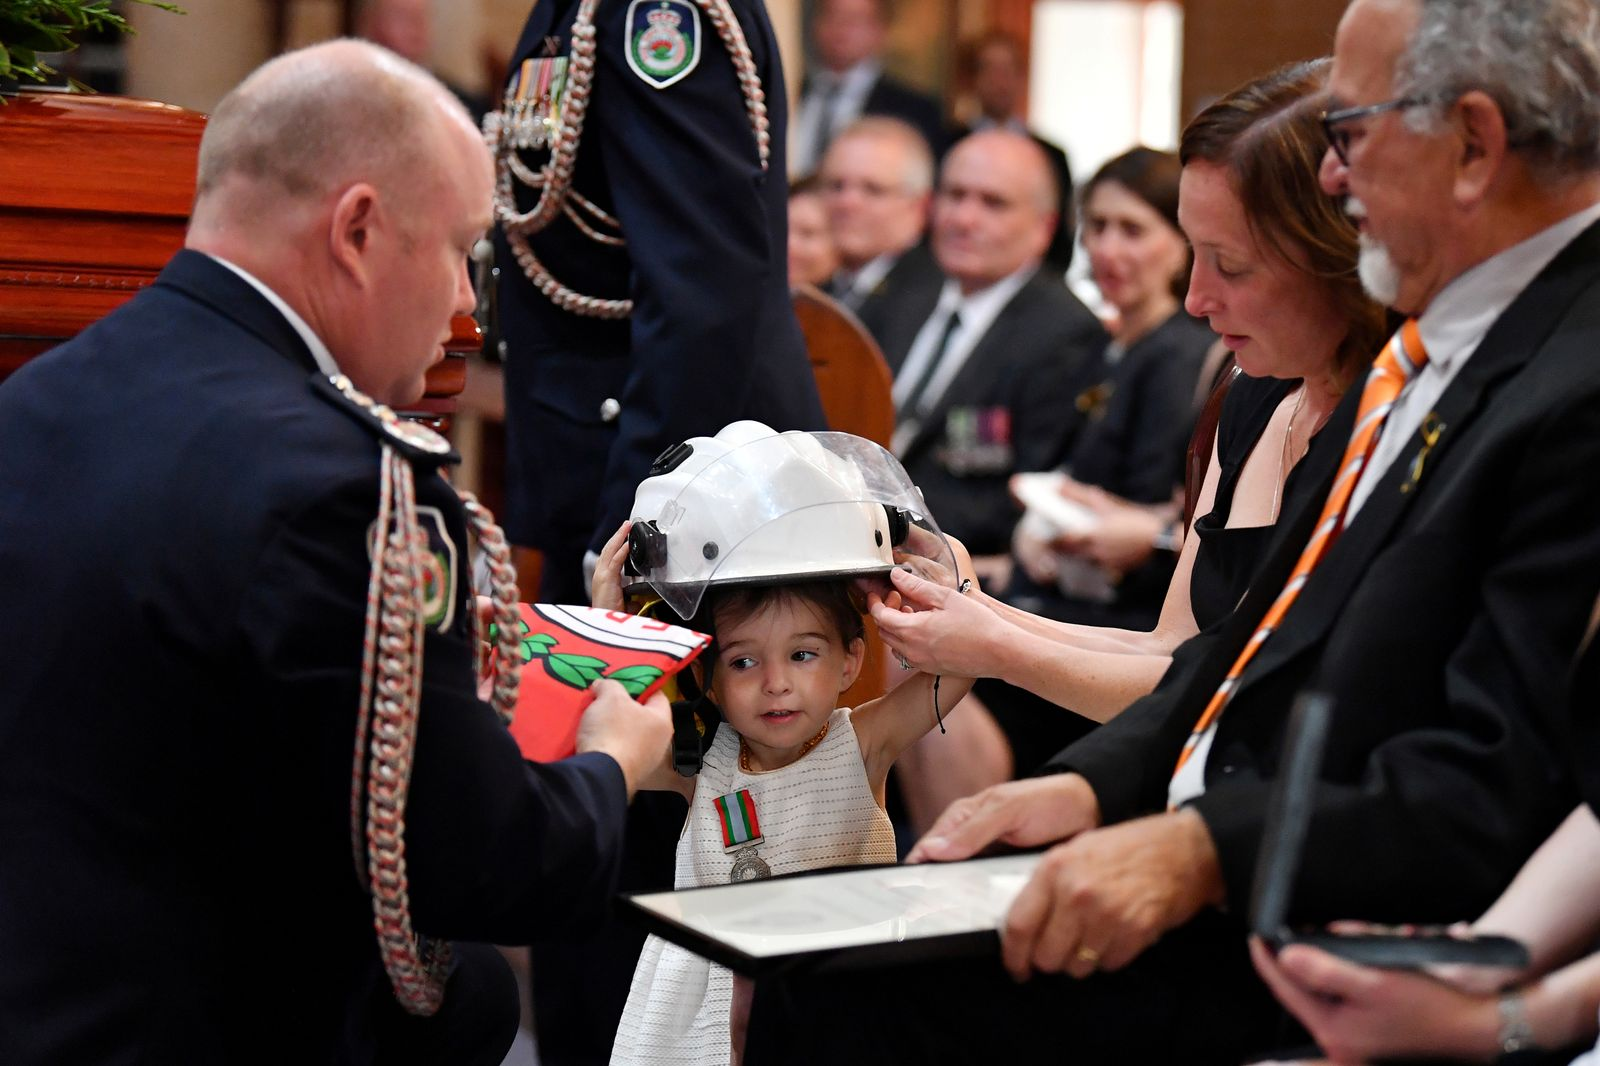 Charlotte O'Dwyer, the daughter of Rural Fire Service volunteer Andrew O'Dwyer, receives her father's helmet during the funeral for NSW RFS volunteer Andrew O'Dwyer at Our Lady of Victories Catholic Church in Horsley Park